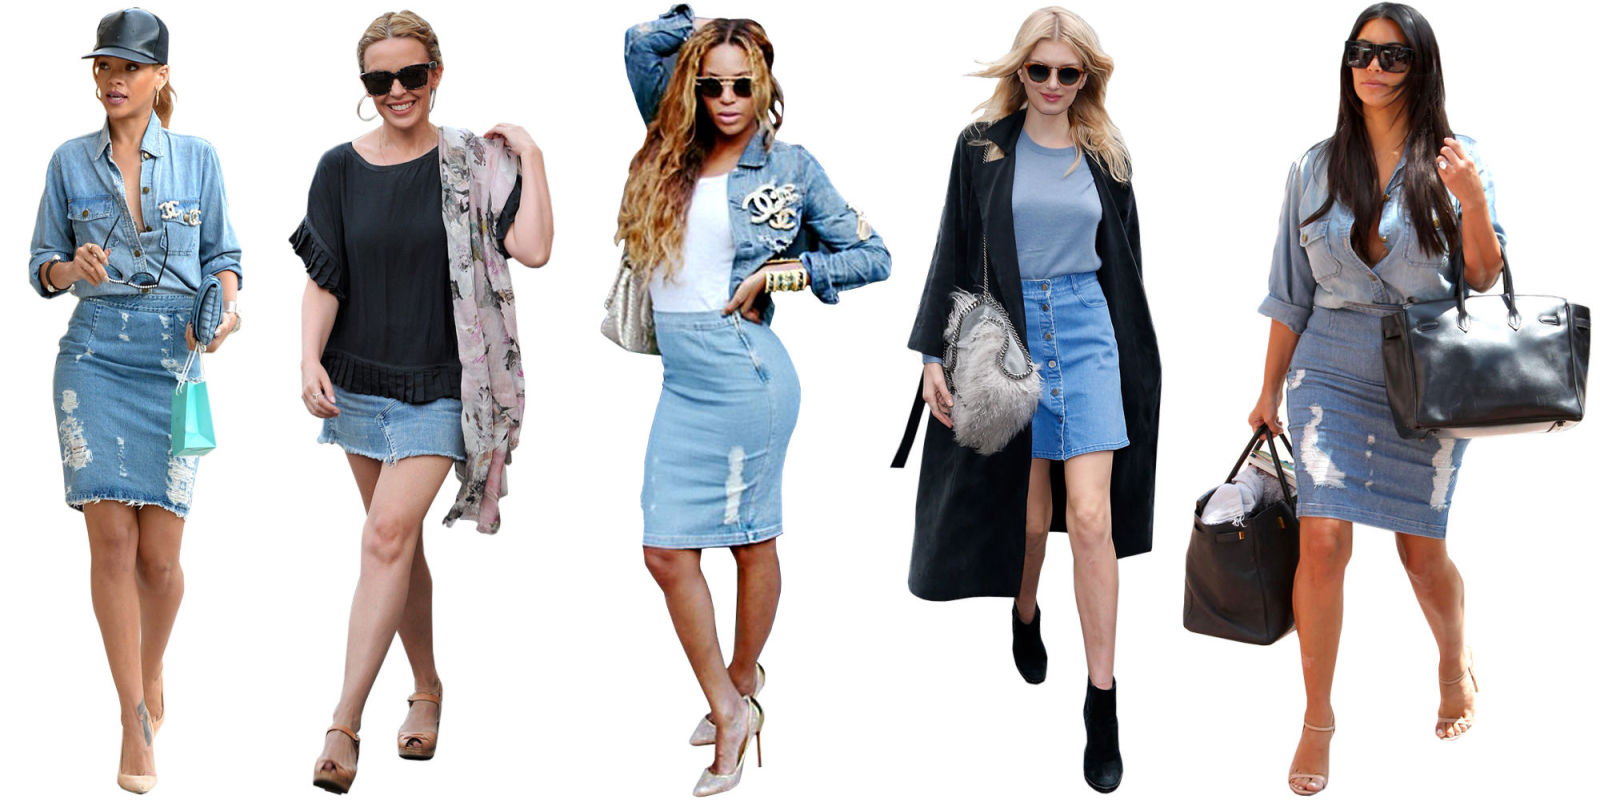 How to Wear a Denim Skirt - 5 Ways to Embrace the Denim Skirt